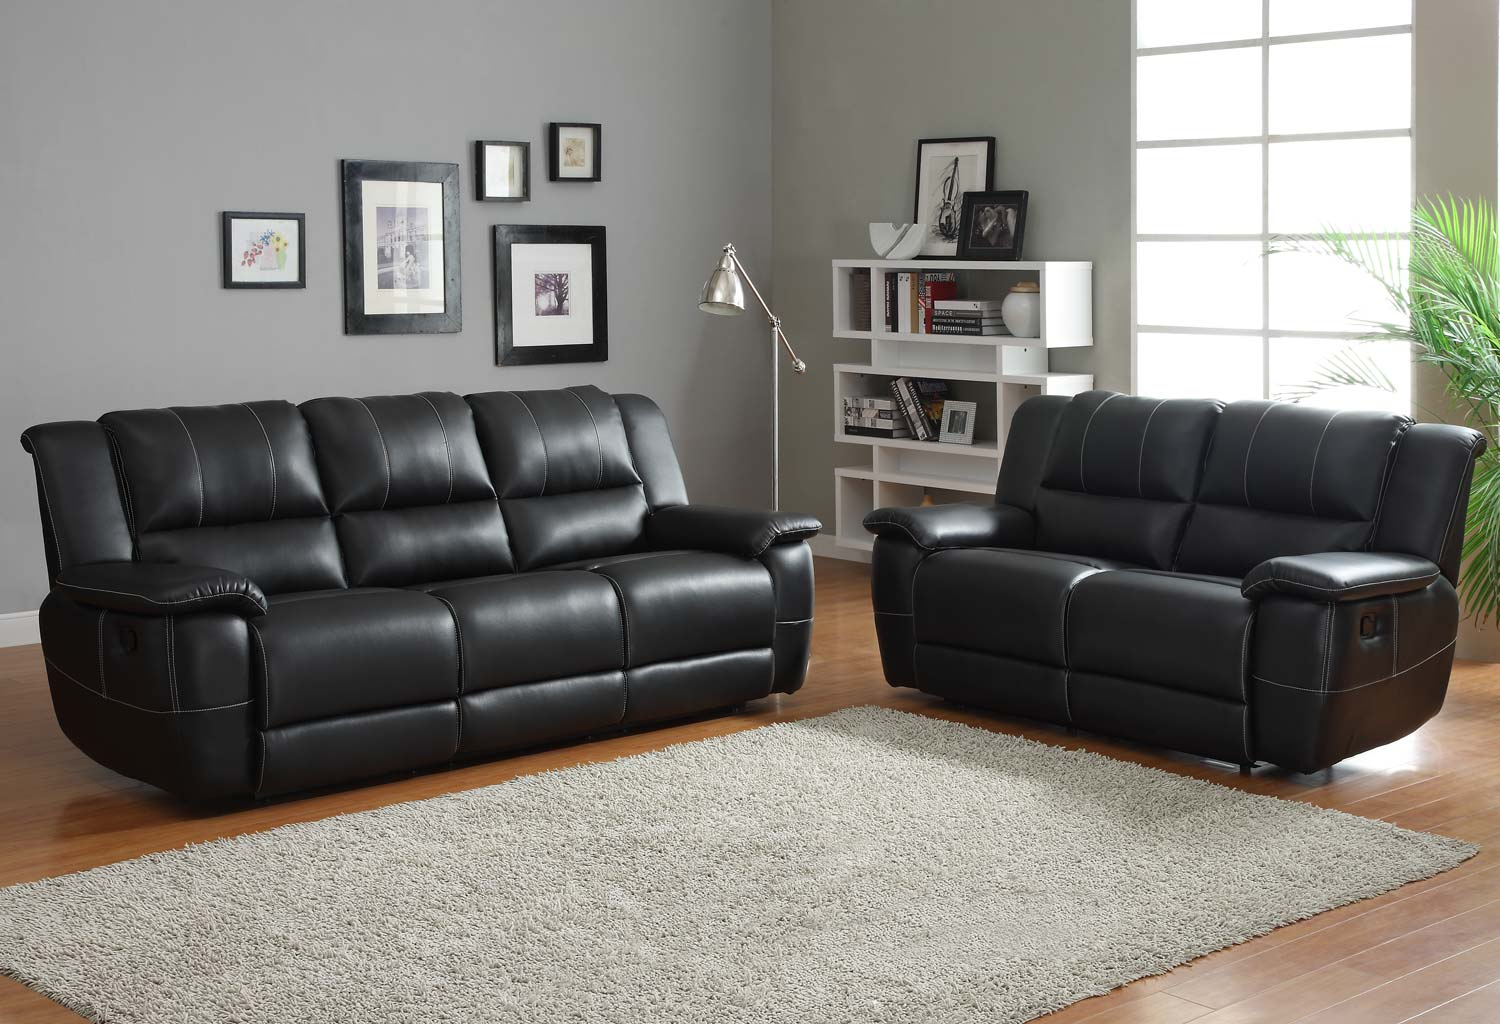 homelegance cantrell reclining sofa set black bonded leather match u9778blk 3 at homelement